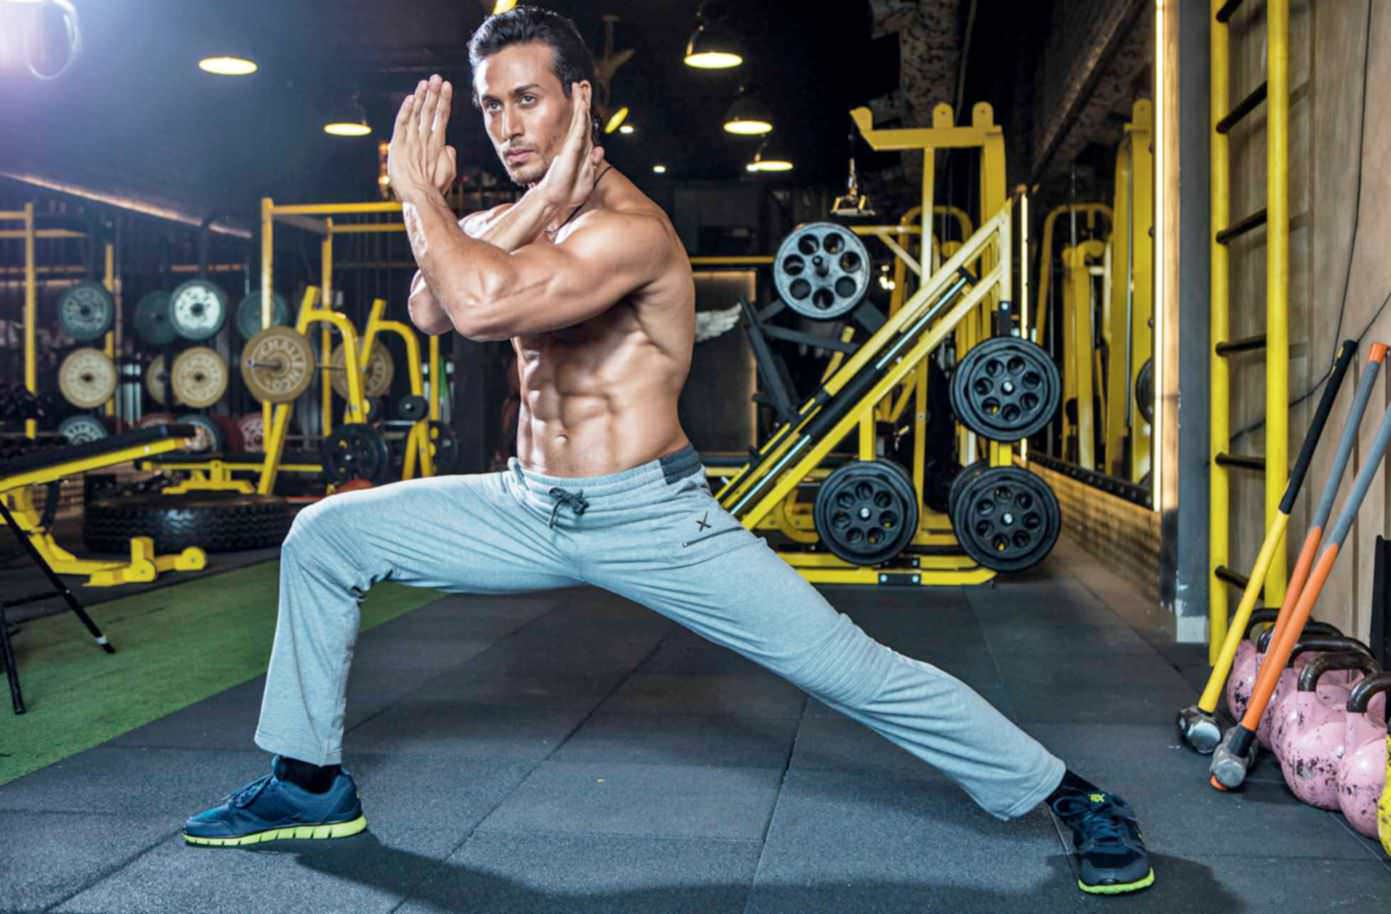 Tiger Shroff Age, Photos(image), Song, Movie, Height, Girlfriend, Sister, Date Of Birth, Net Worth, Biography, Education, Awards, Instagram, Twitter, Facebook, Wiki, Imdb, Youtube (40)